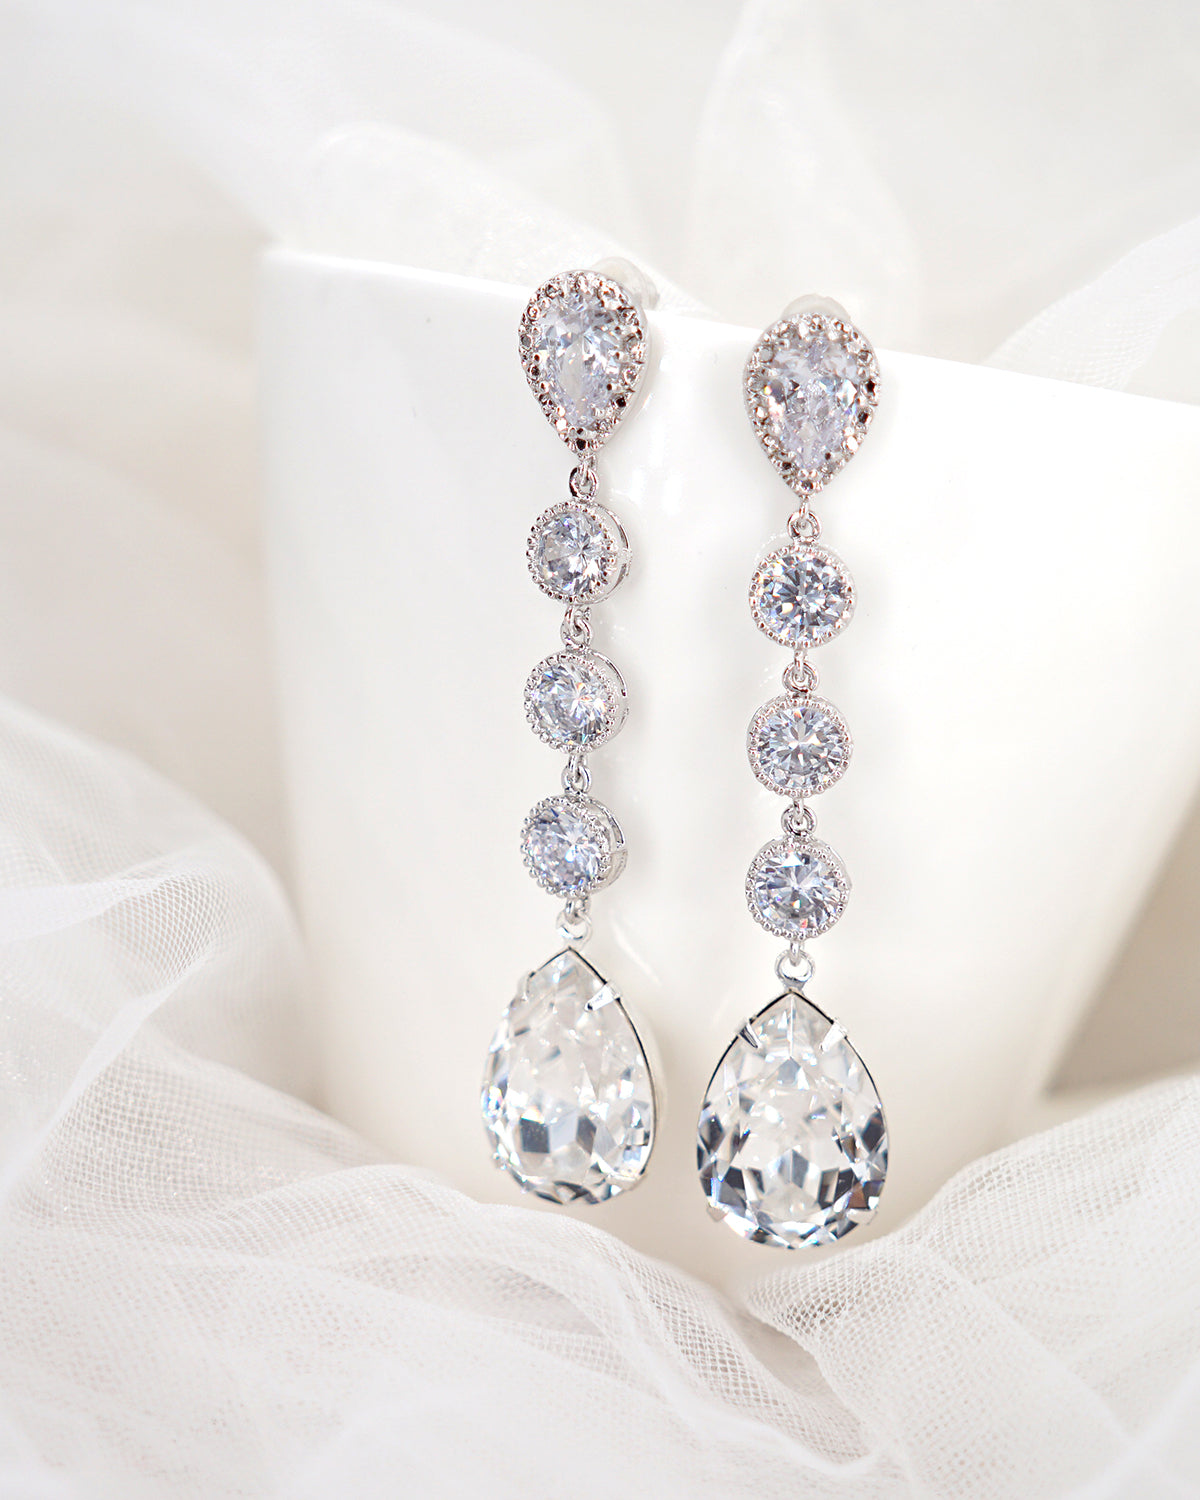 Silver Crystal Earrings and Bracelet | Brides Bridal Weddings Jewelry